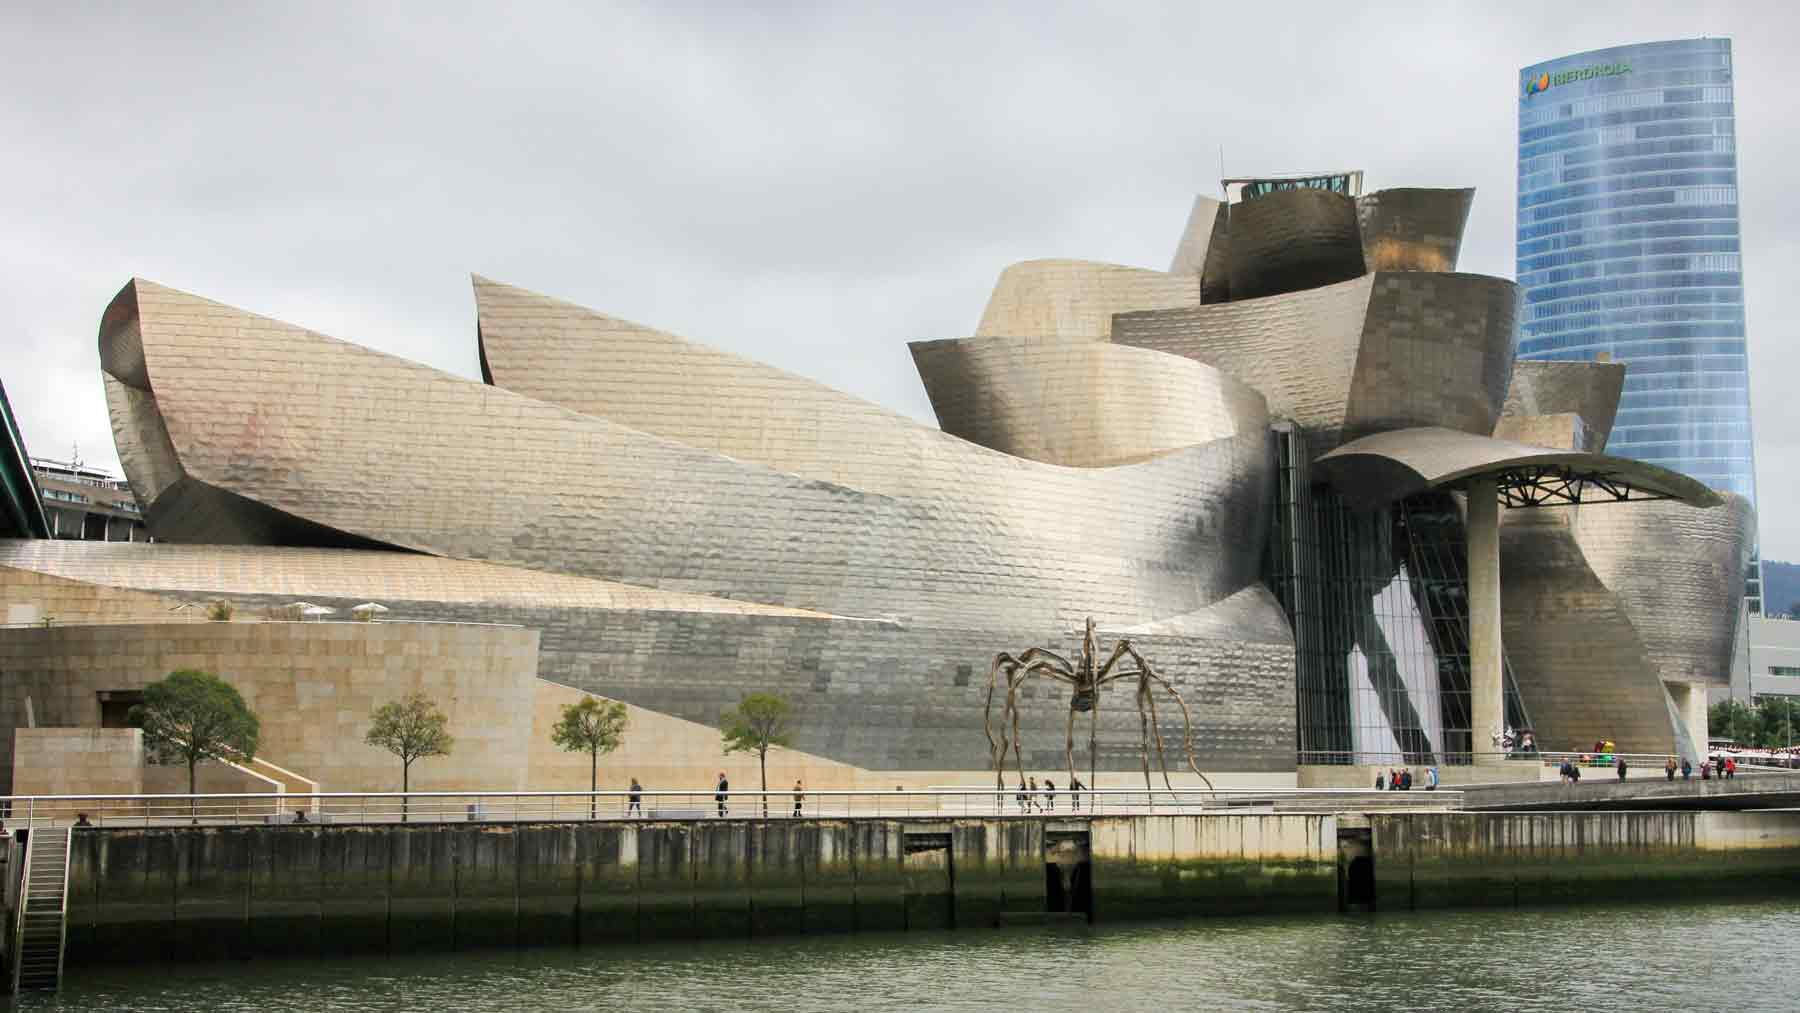 Guggenheim Bilbao from across the river